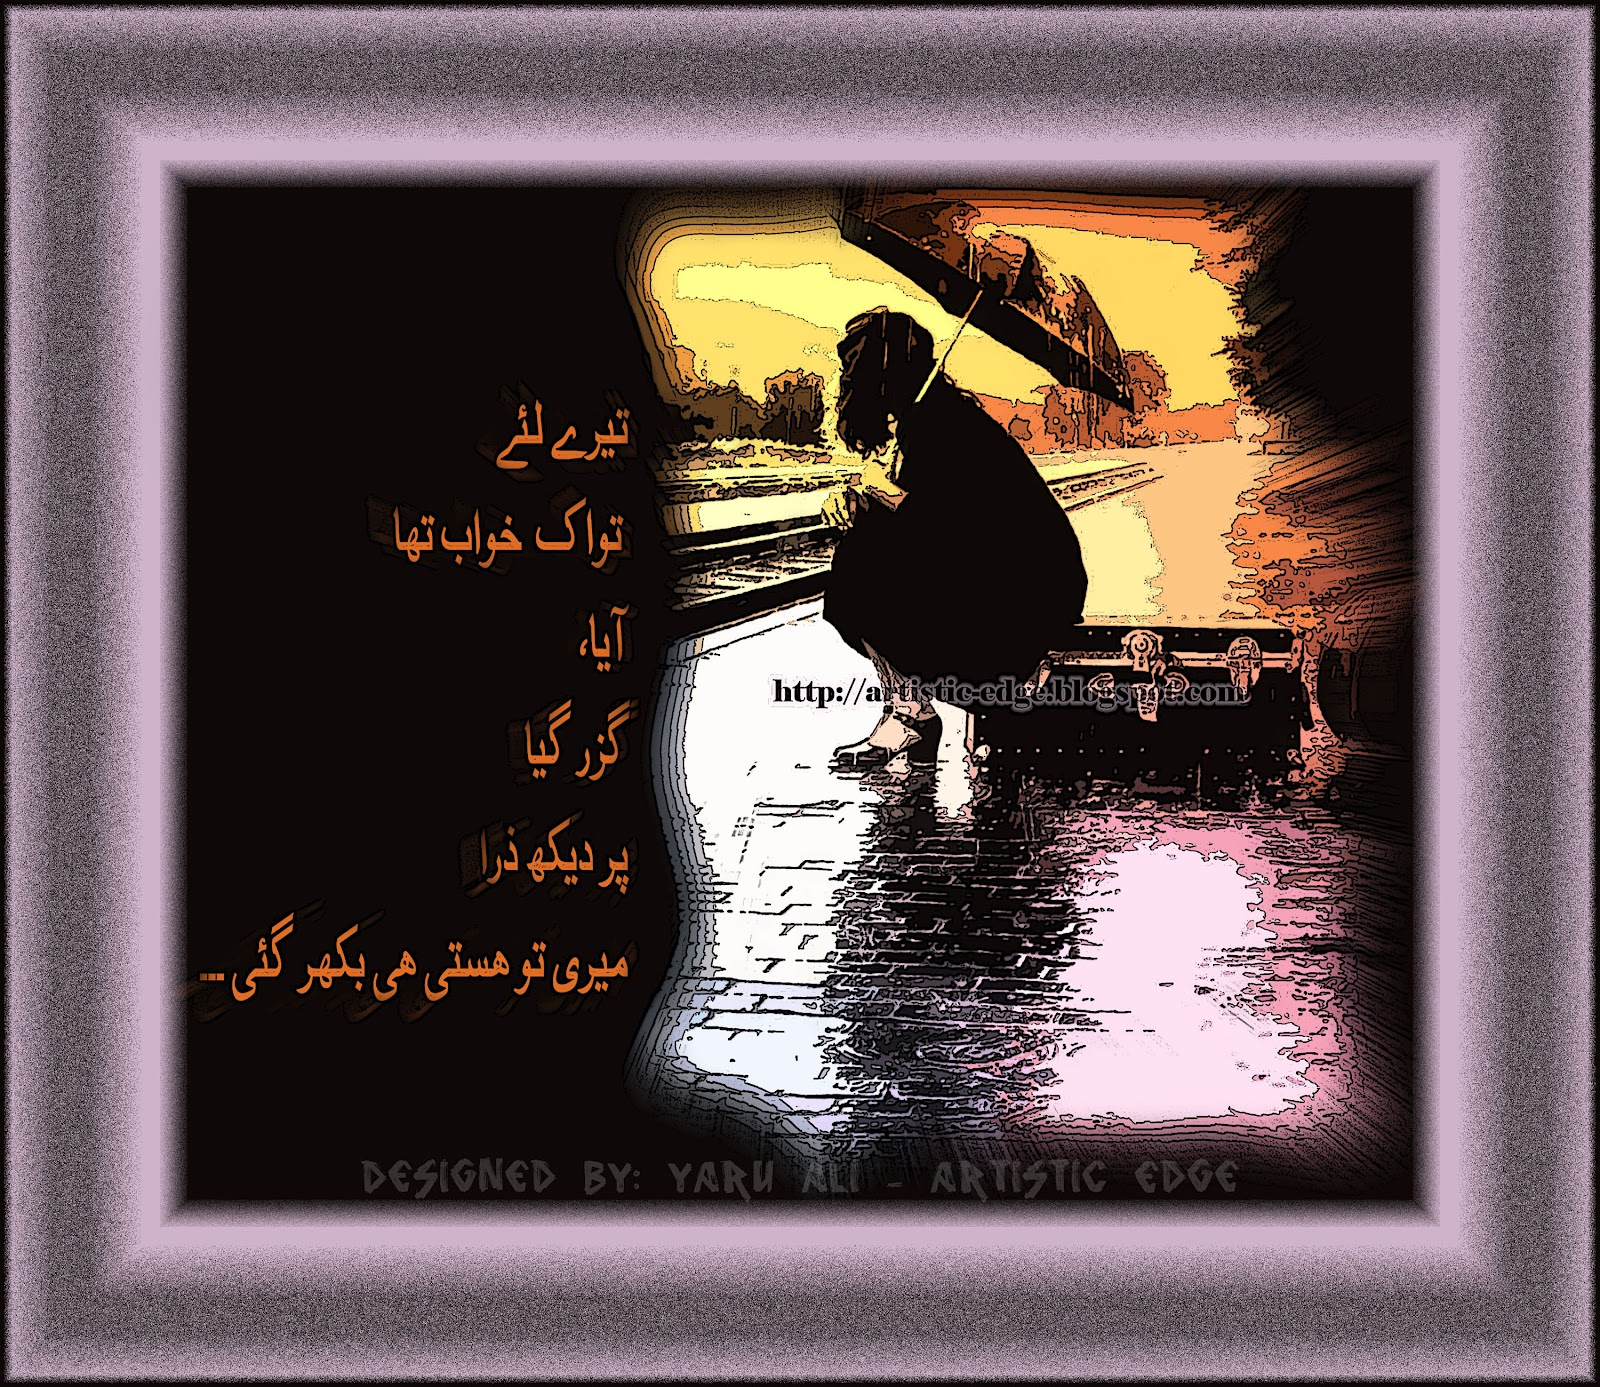 http://1.bp.blogspot.com/-aGgjf4c3kbg/T-Lbg849nDI/AAAAAAAABY0/AcXTOB-qFD8/s1600/Sad+Urdu+Poetry+Wallpapers.jpg